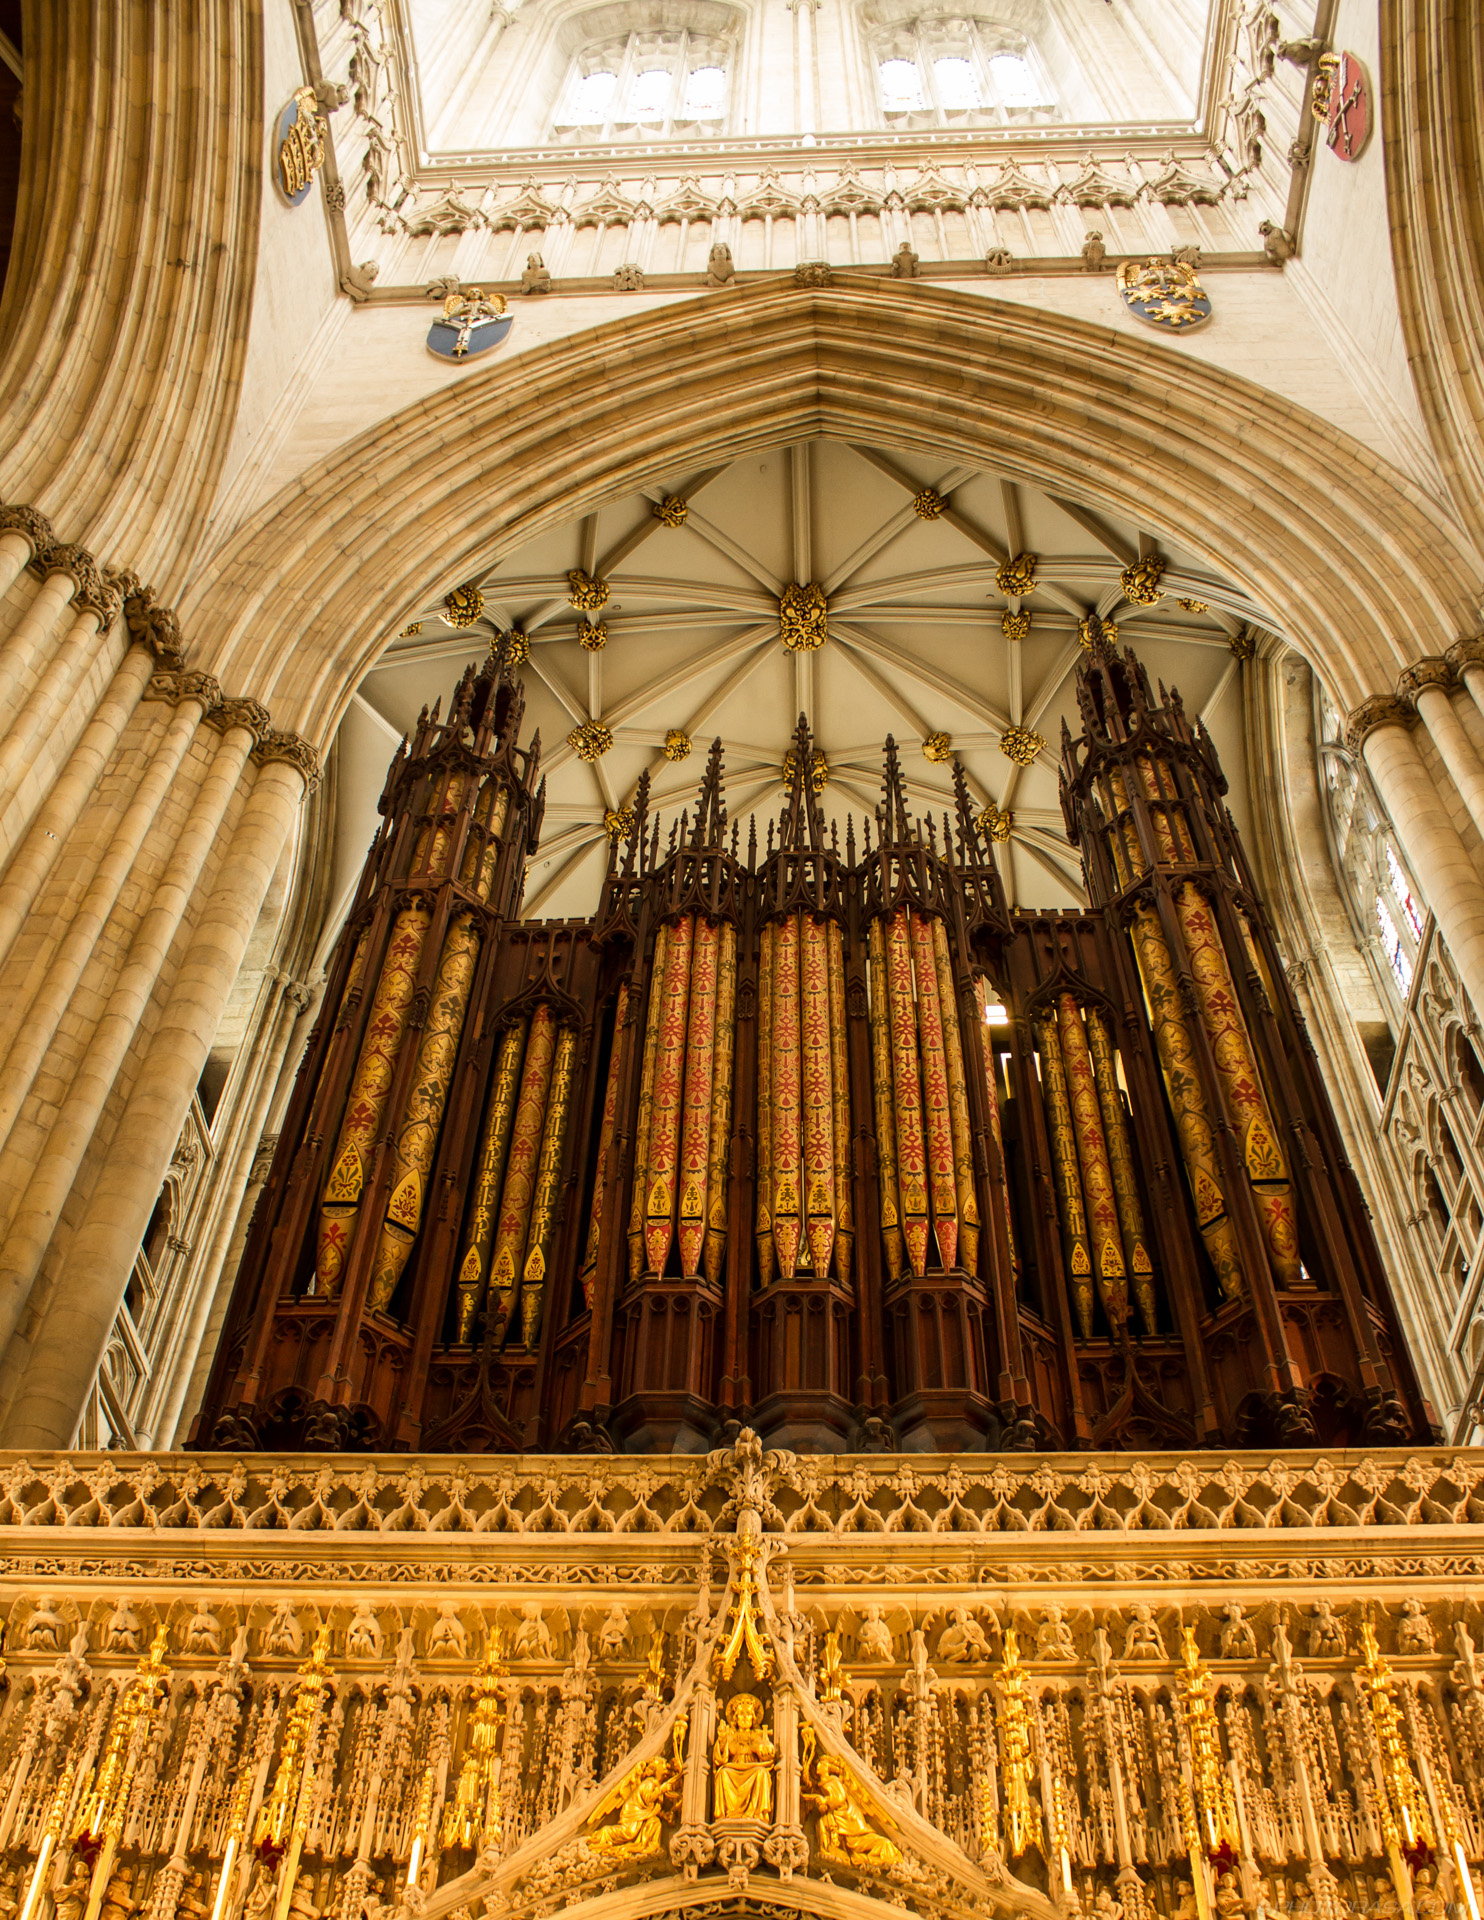 http://photorasa.com/places/yorkminster-cathedral/attachment/majestic-cathedral-organ/